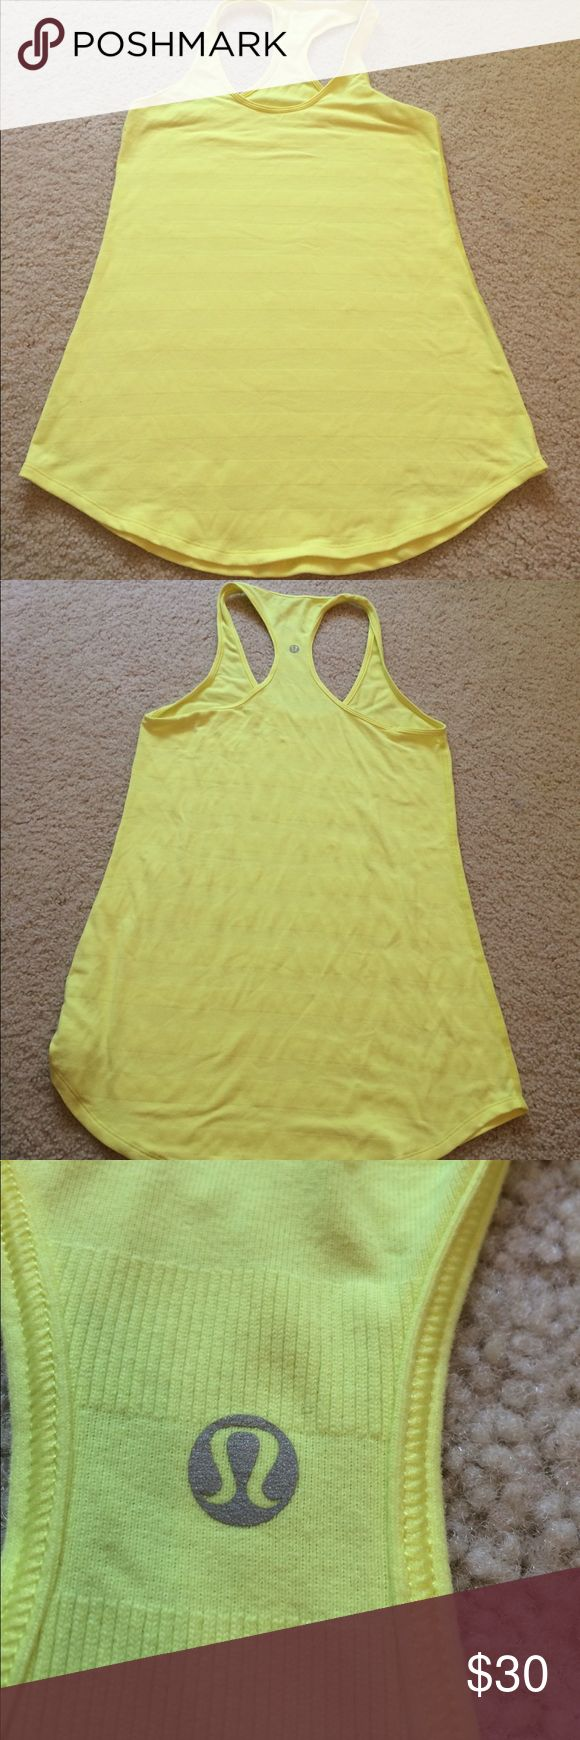 "Lululemon yellow tank top size 8. Lululemon yellow tank top size 8. Does not have size in it. Measures 15"" armpit to armpit, waist area 18"", 27"" top to bottom. Stretchy material. In good used condition. No piling. Comes from smoke free and pet free home. lululemon athletica Tops Tank Tops"